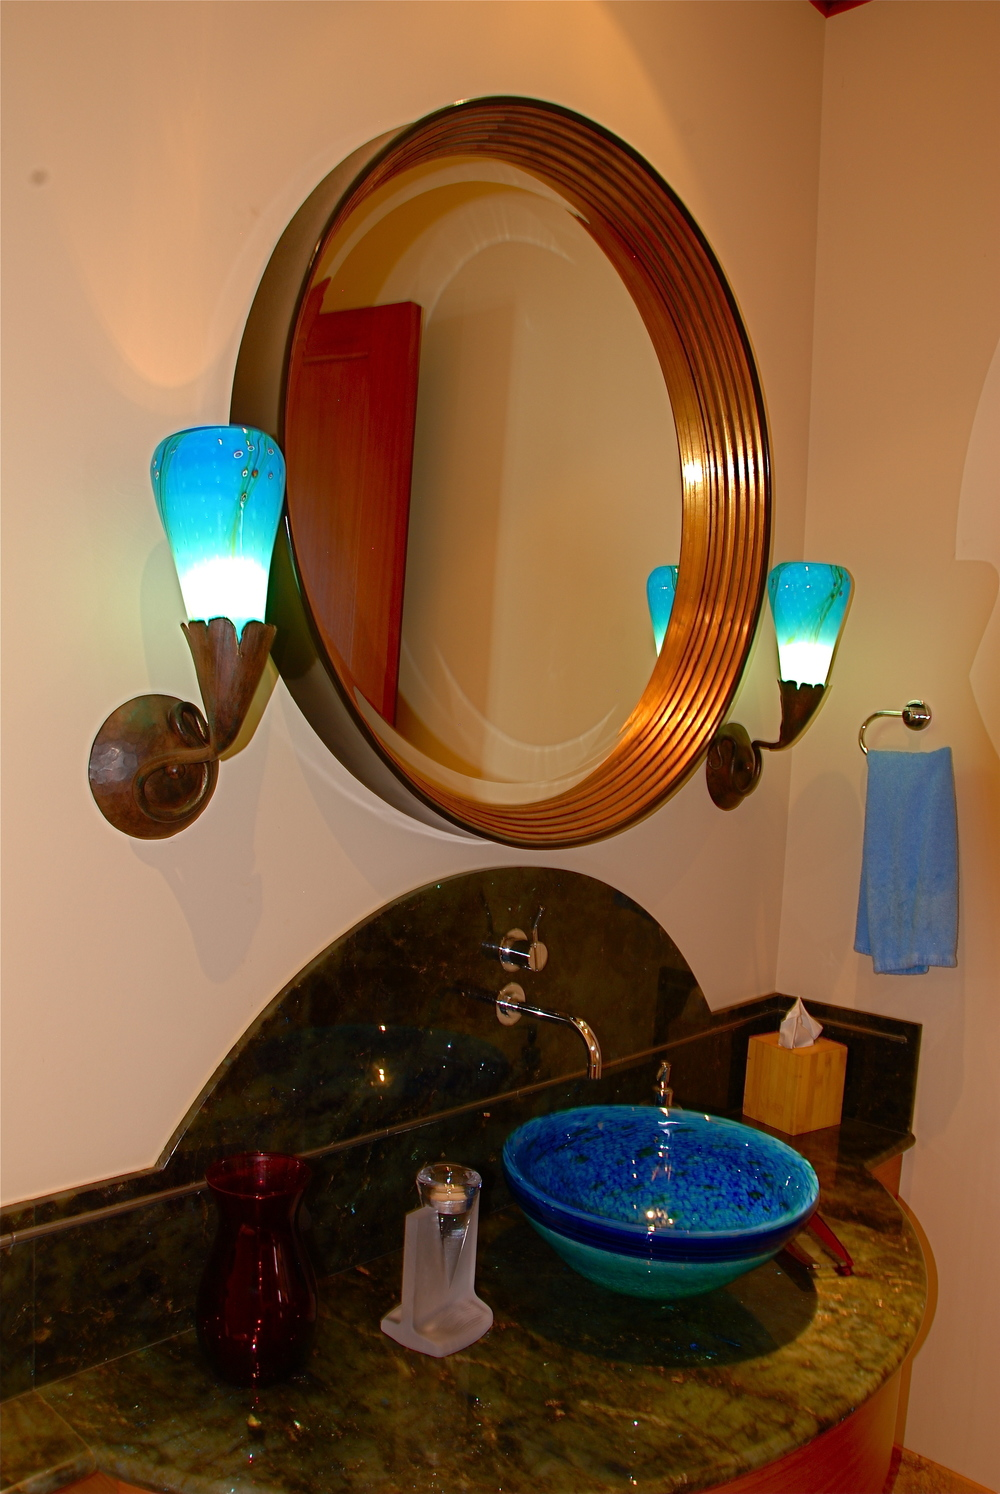 Gingko style wall sconce with Aquaiurm color